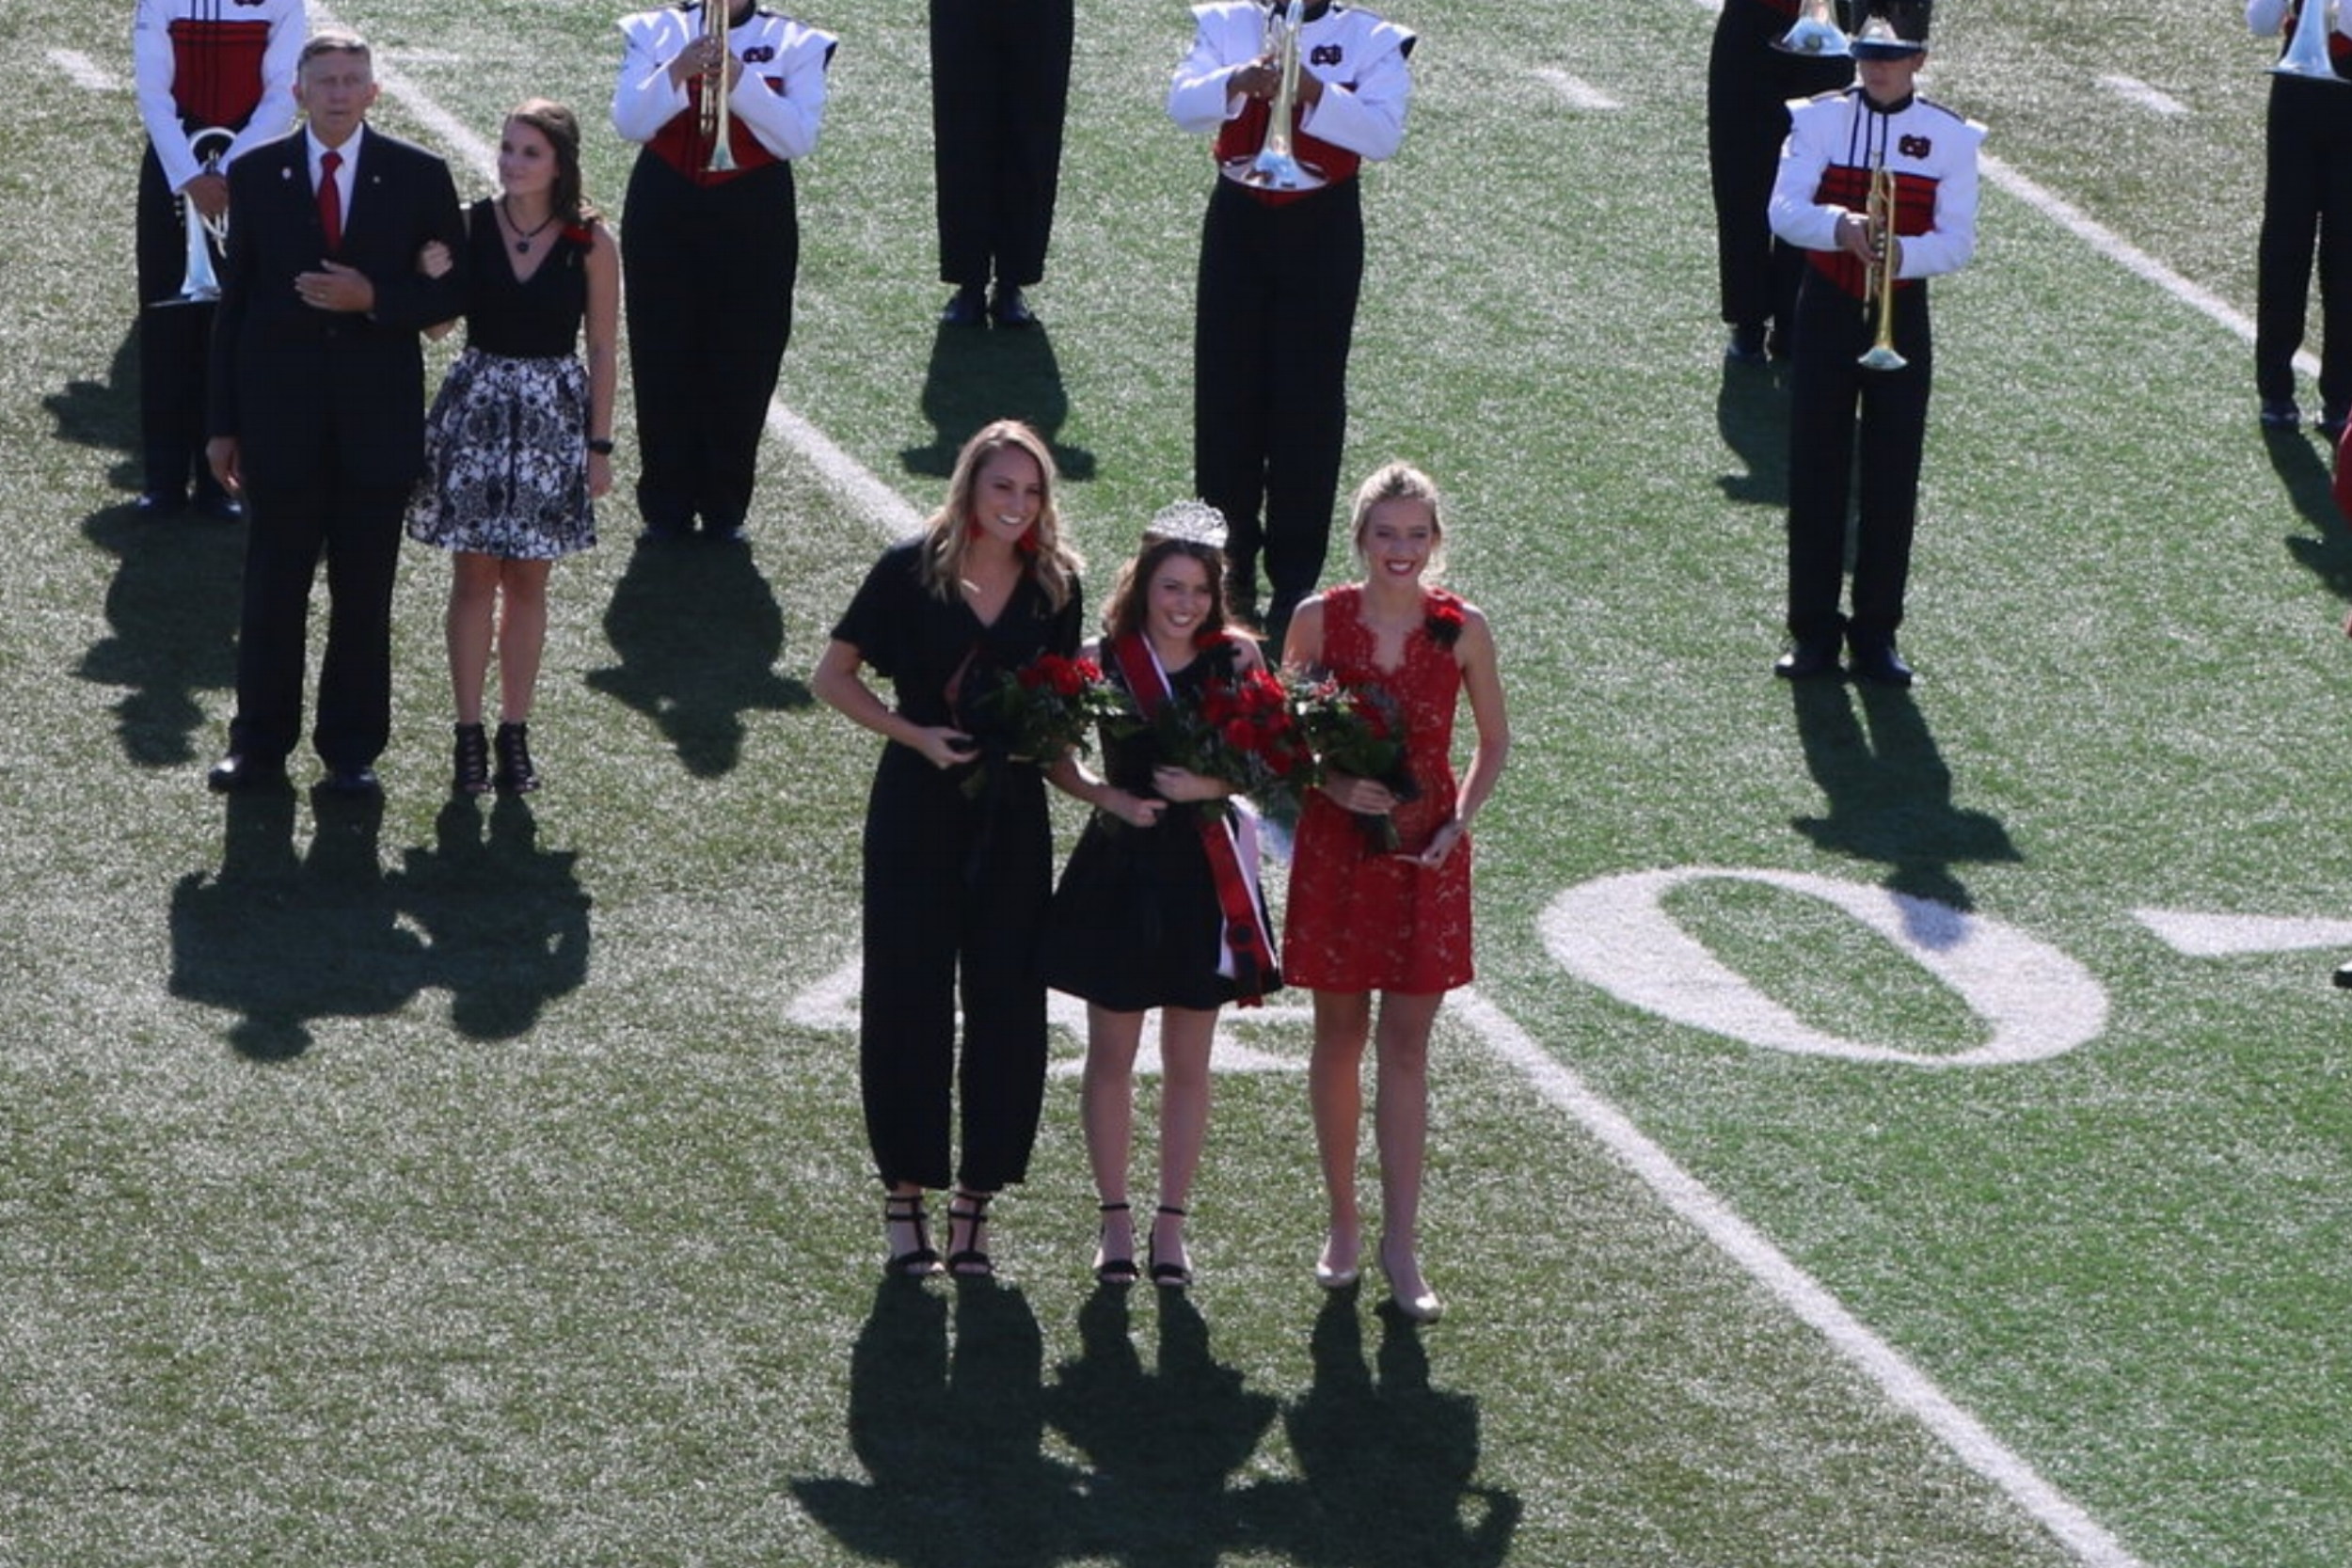 Junior, Allison Yeater, was announced NGU's Homecoming Queen 2018, and standing with her are 1st Runner Up junior, Courtney Williamson and 2nd Runner Up junior, Gabriella Porter.